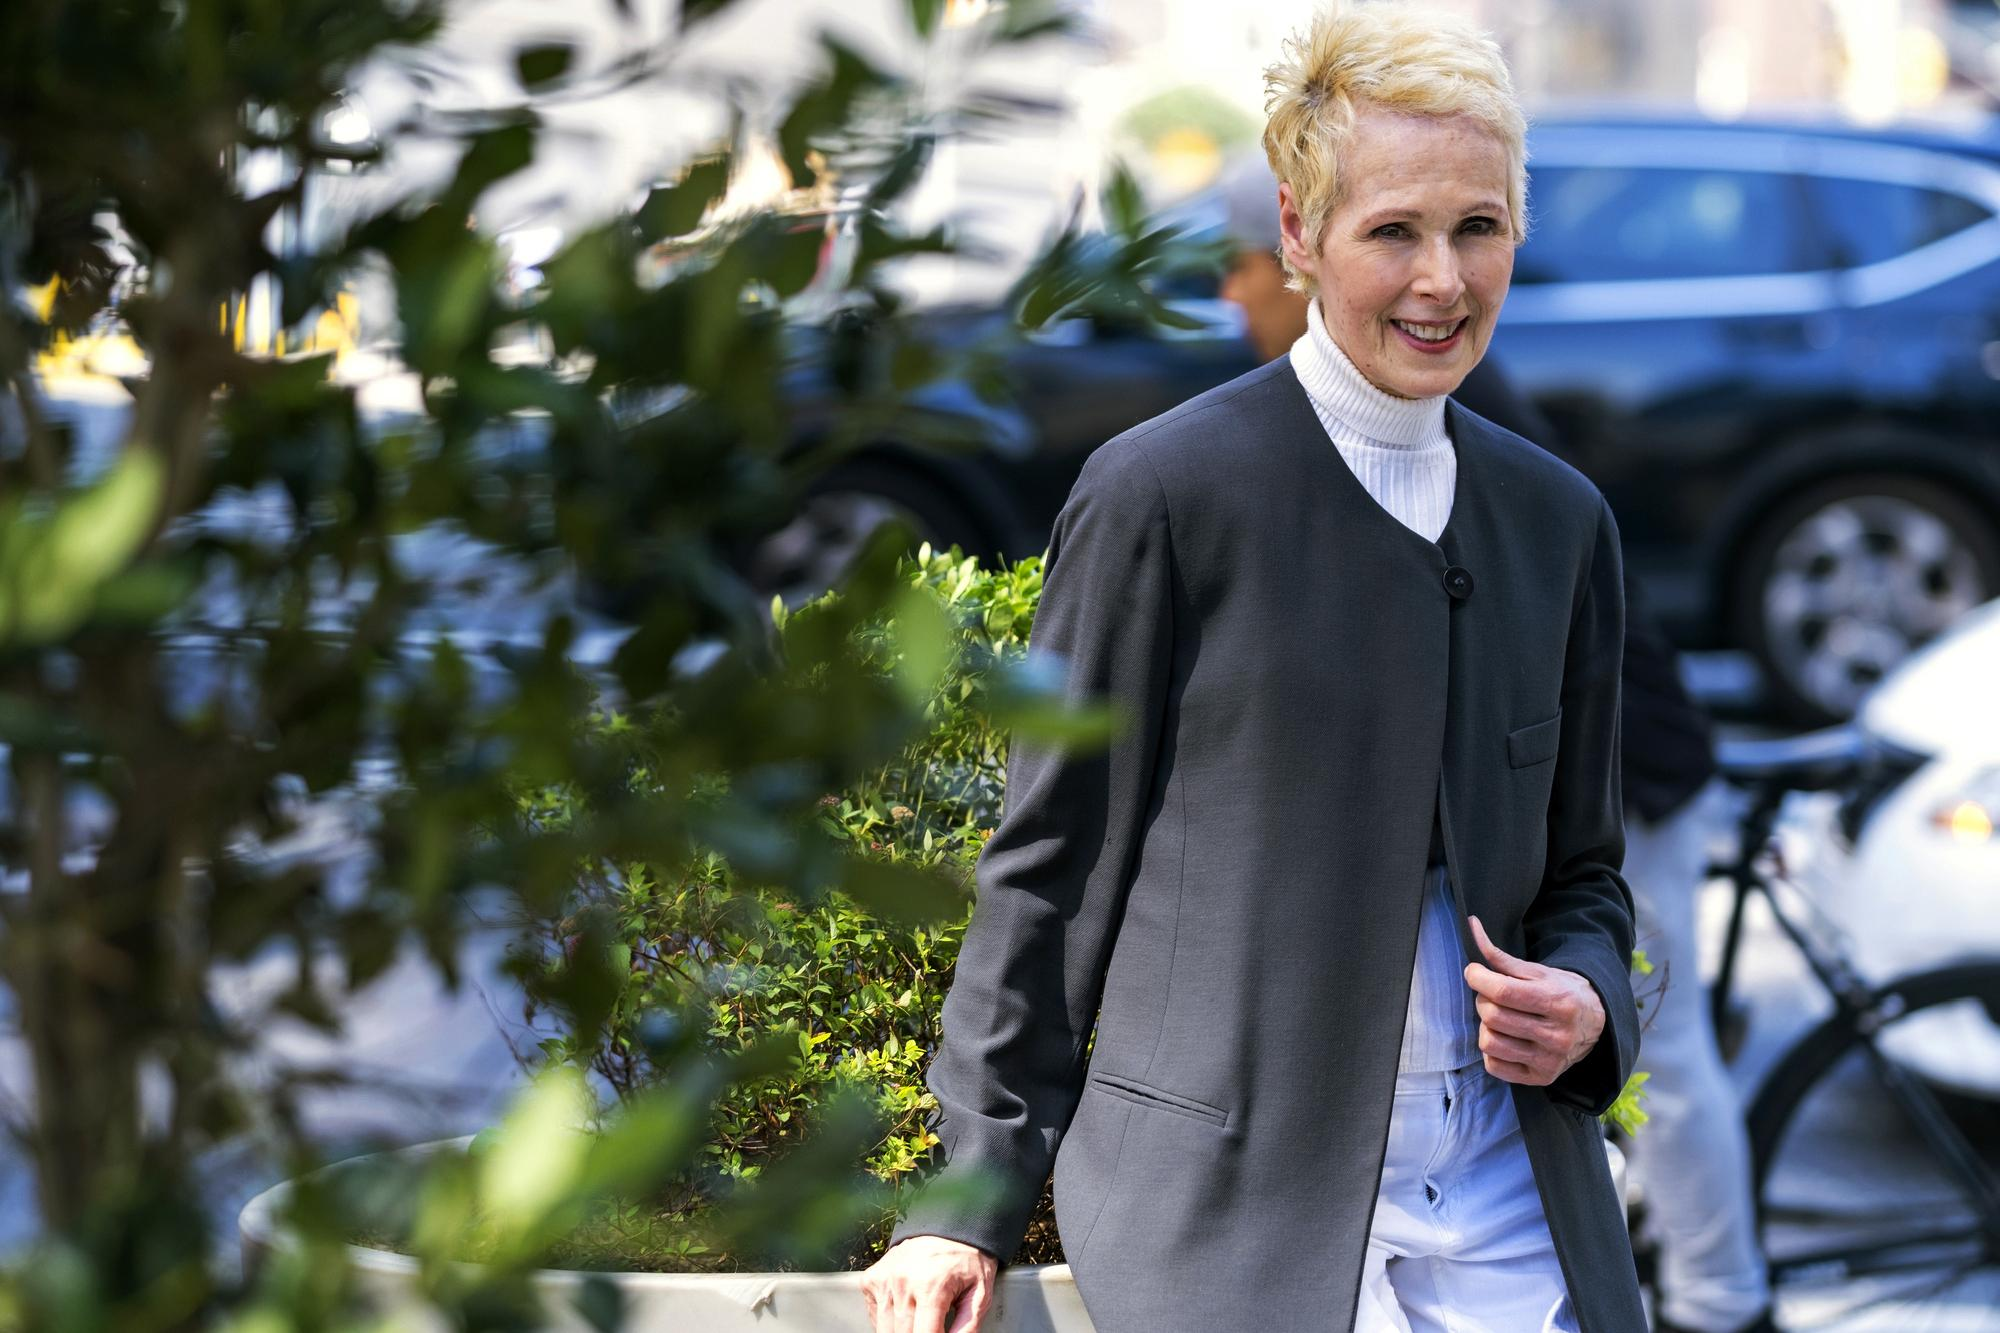 E. Jean Carroll on not being Trump's 'type': 'I'm so glad'